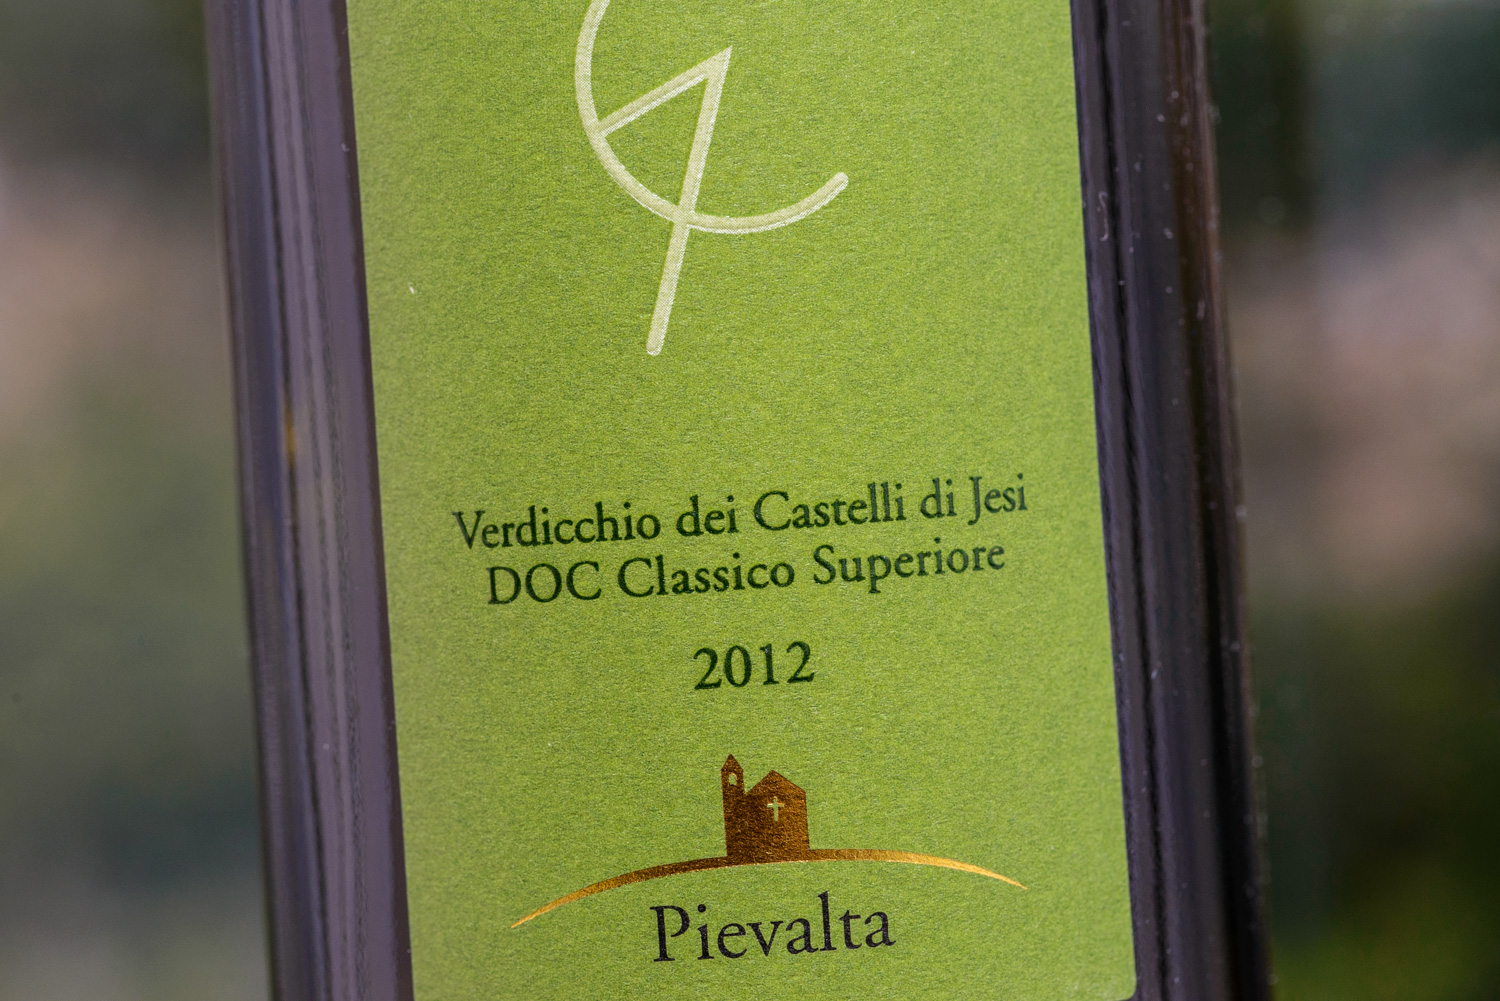 /sites/default/files/images/pievalta_verdicchio_2012.jpg